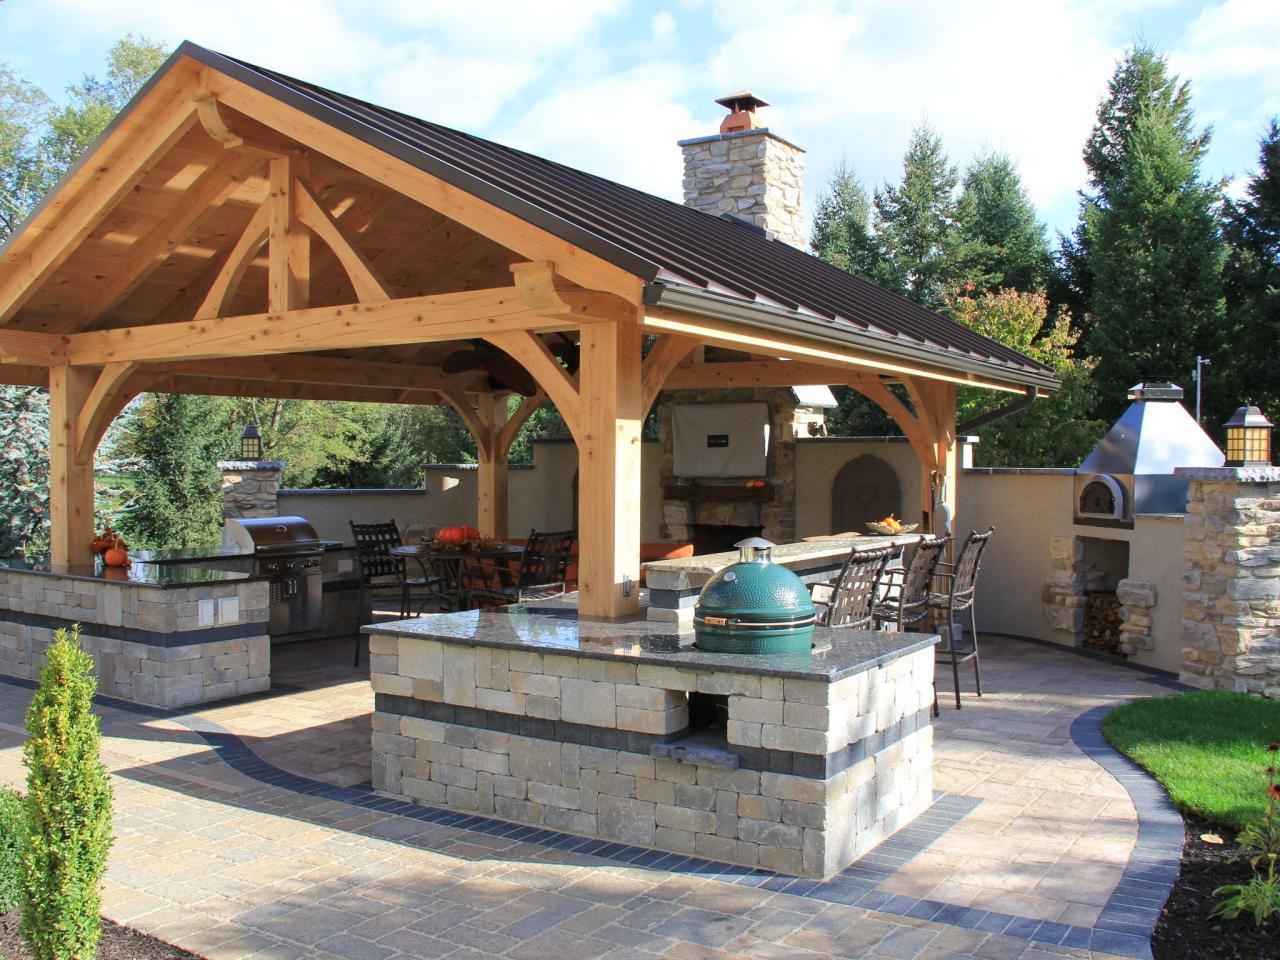 Outdoor Kitchen  Pools  Pinterest  Kitchens Outdoor Living And Amazing Patio Kitchens Design Inspiration